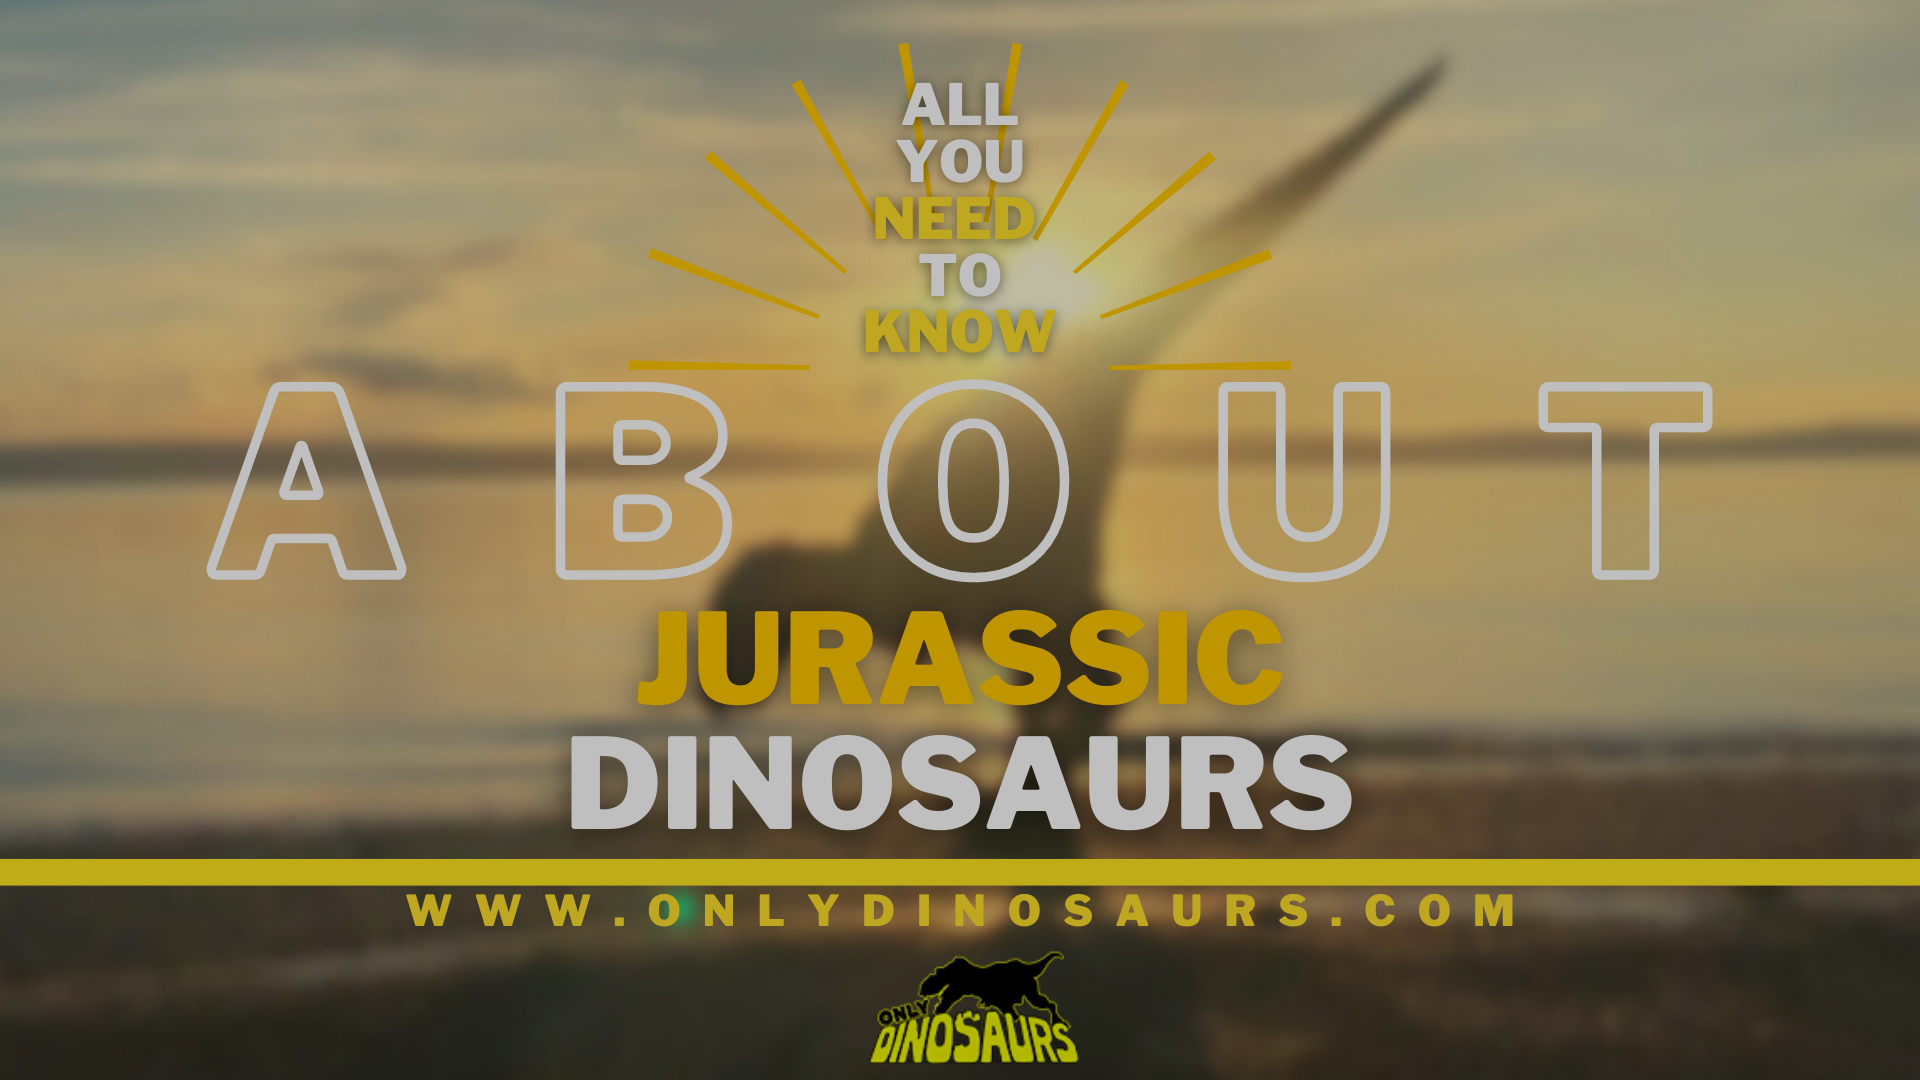 All You Need to Know About Jurassic Dinosaurs